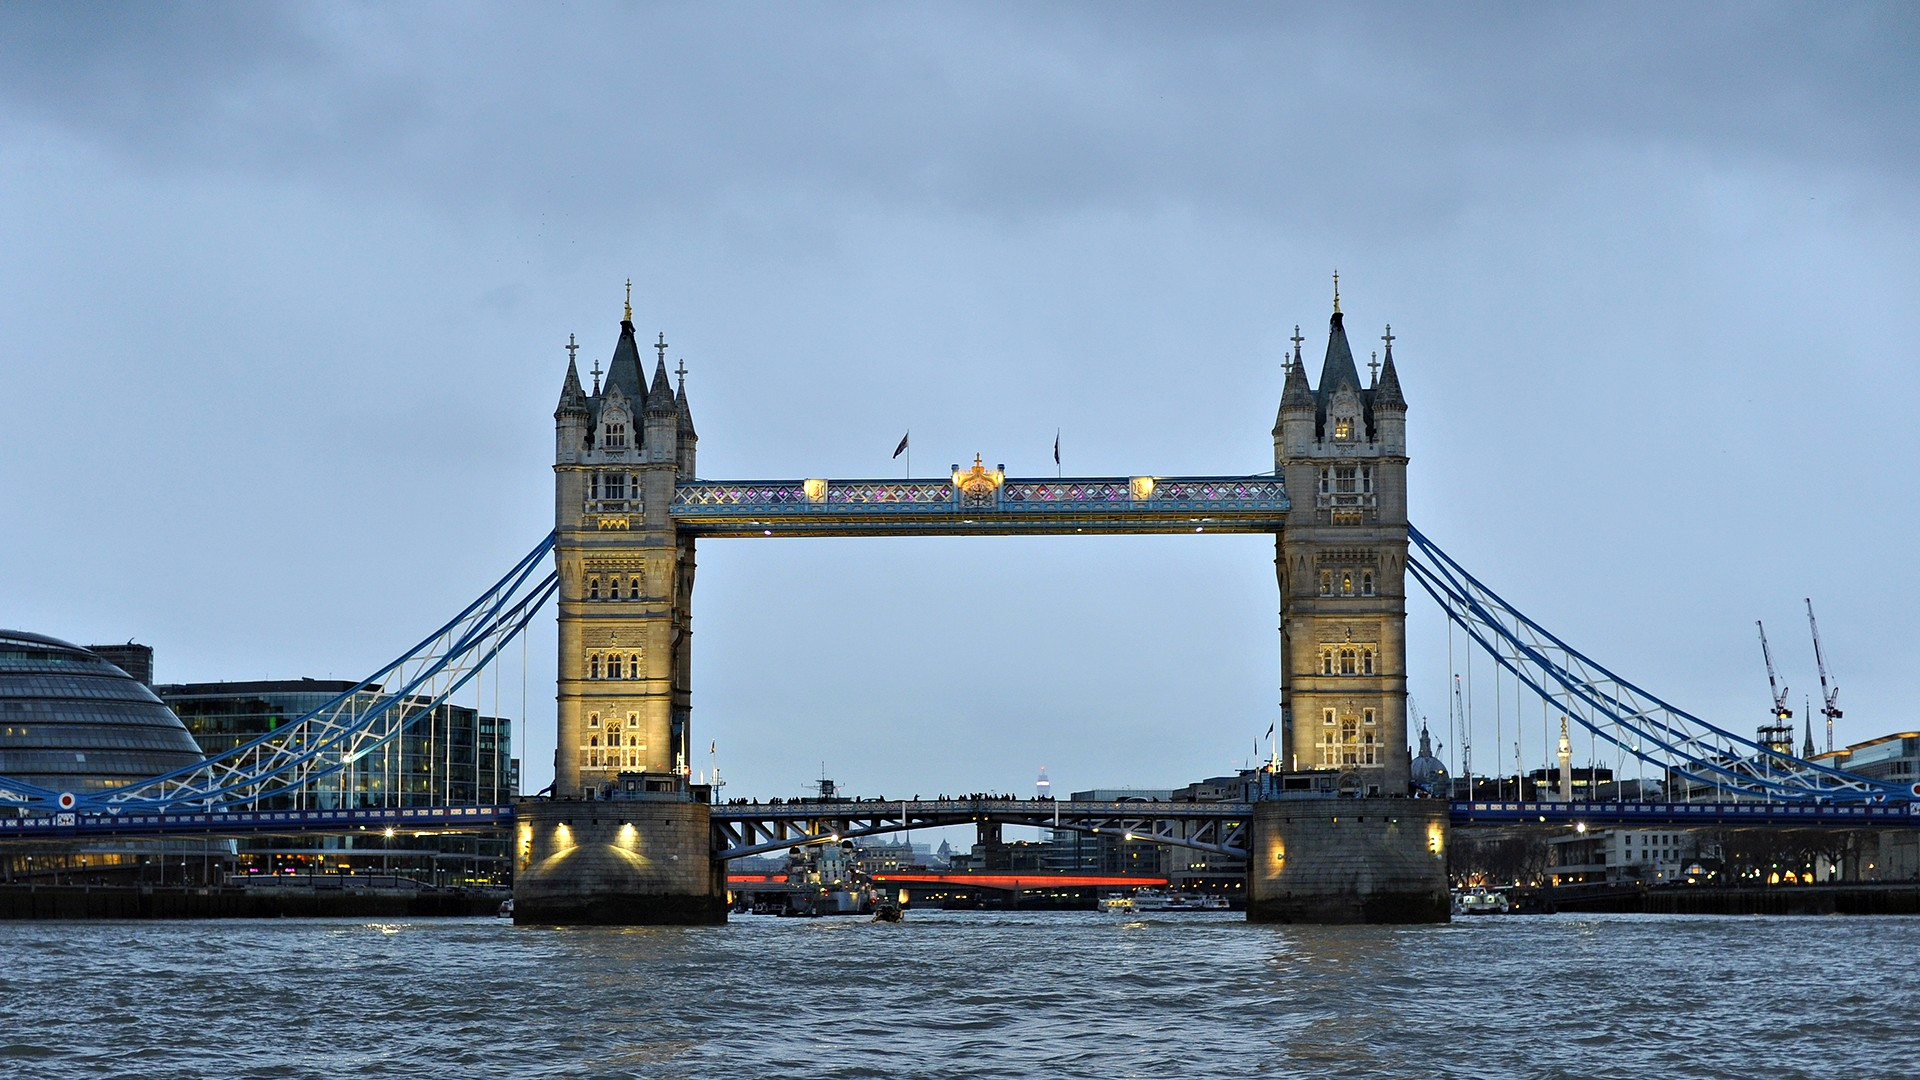 wallpaper bridge london scenic wallpapers images 1920x1080 1920x1080